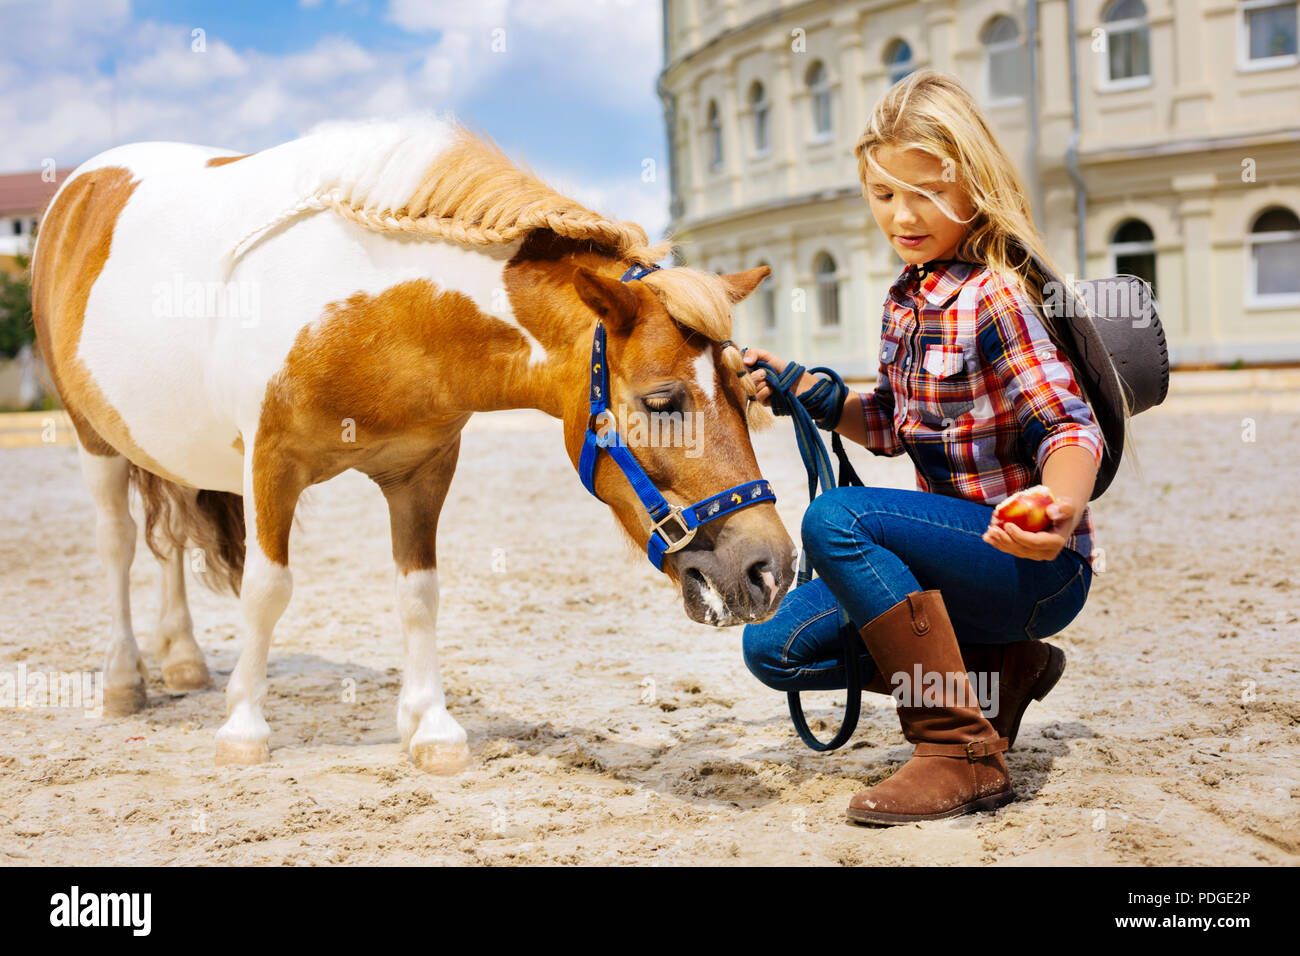 Cute girl wearing brown leather riding boots feeding horse - Stock Image